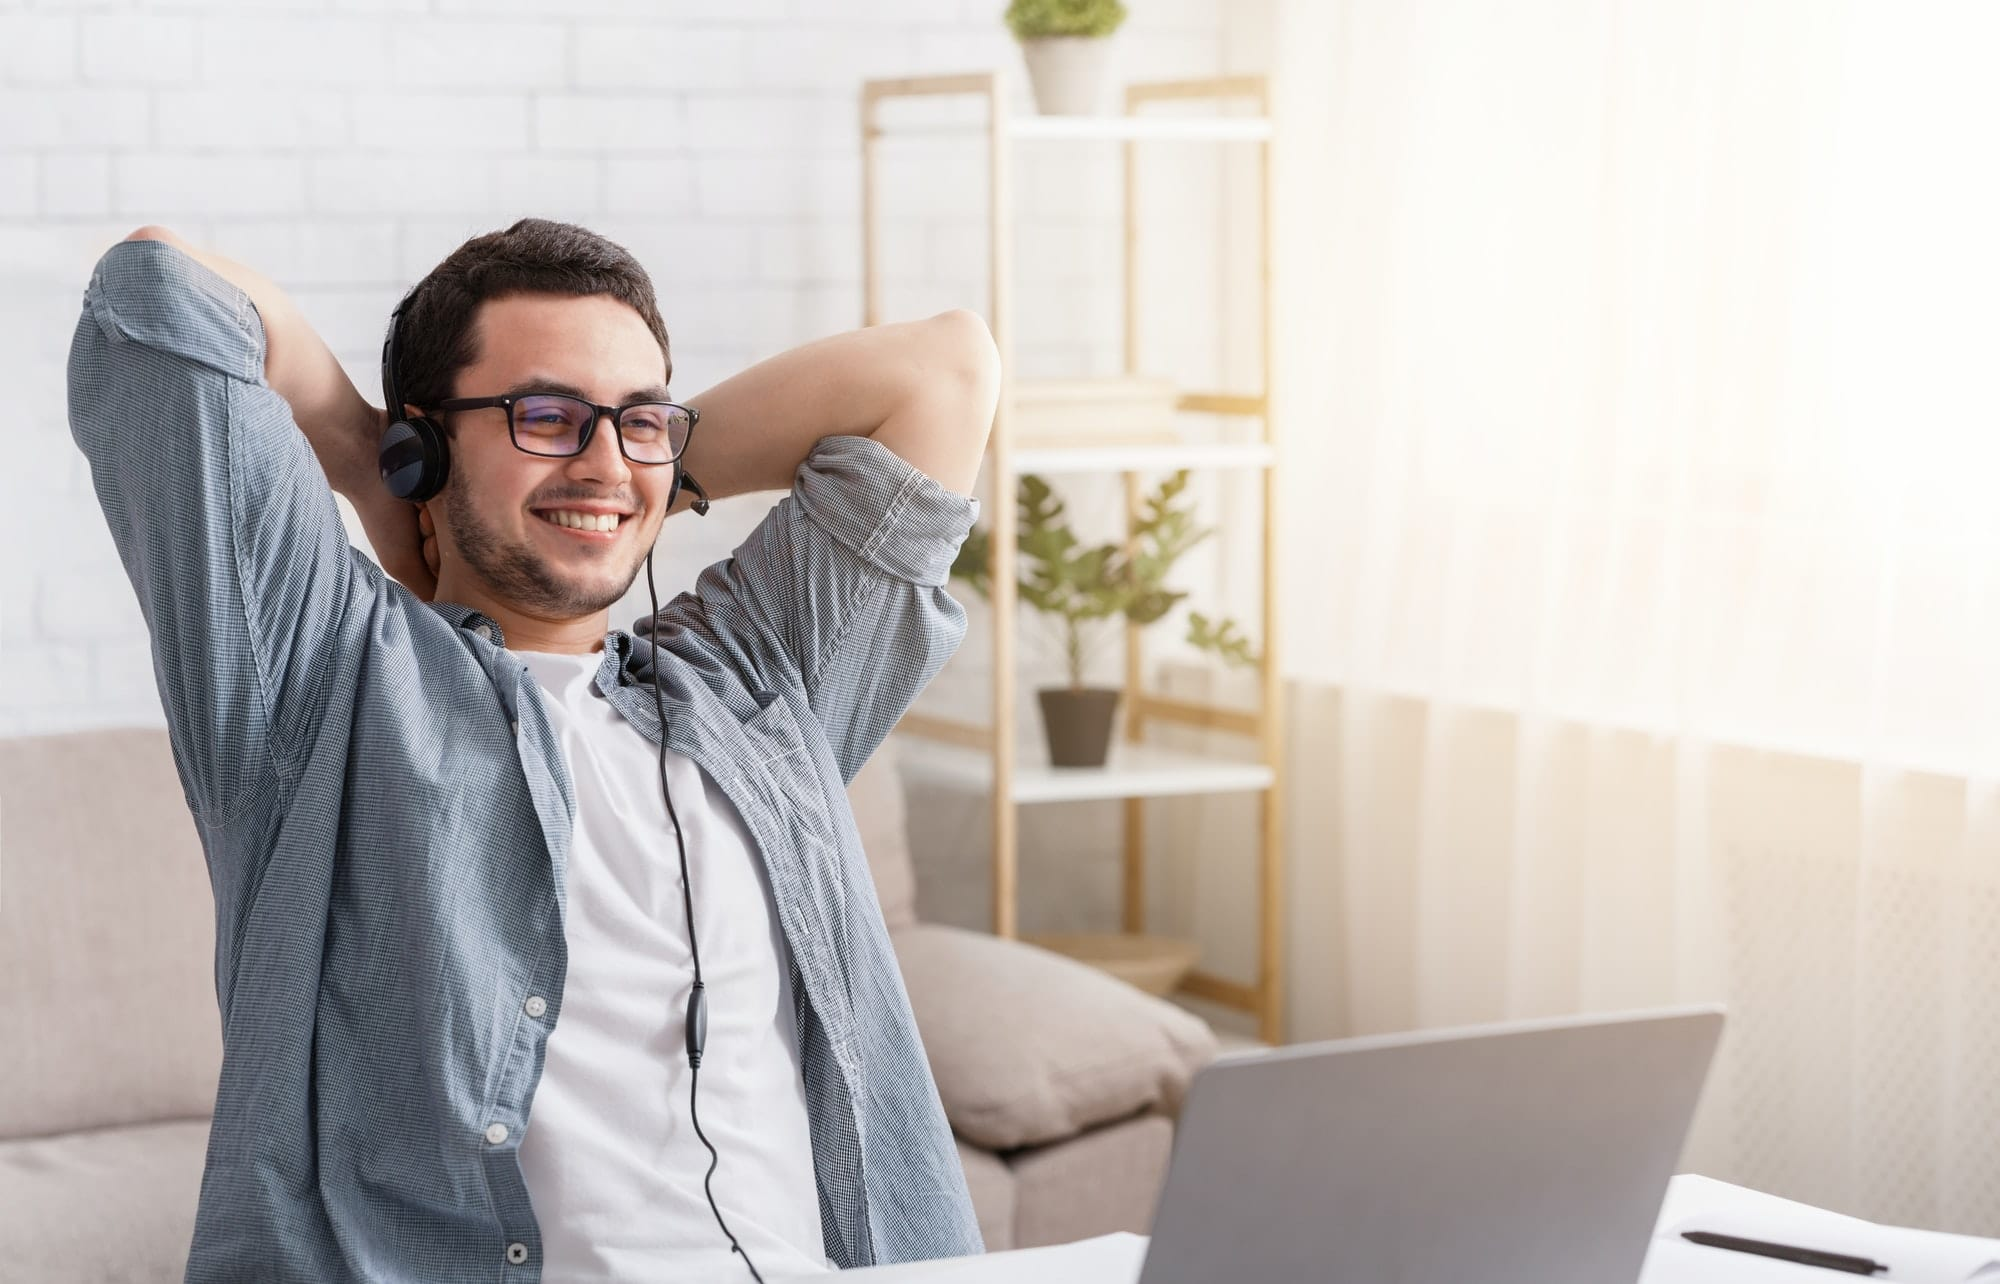 Online webinar and remote work. Man in headset with laptop at home